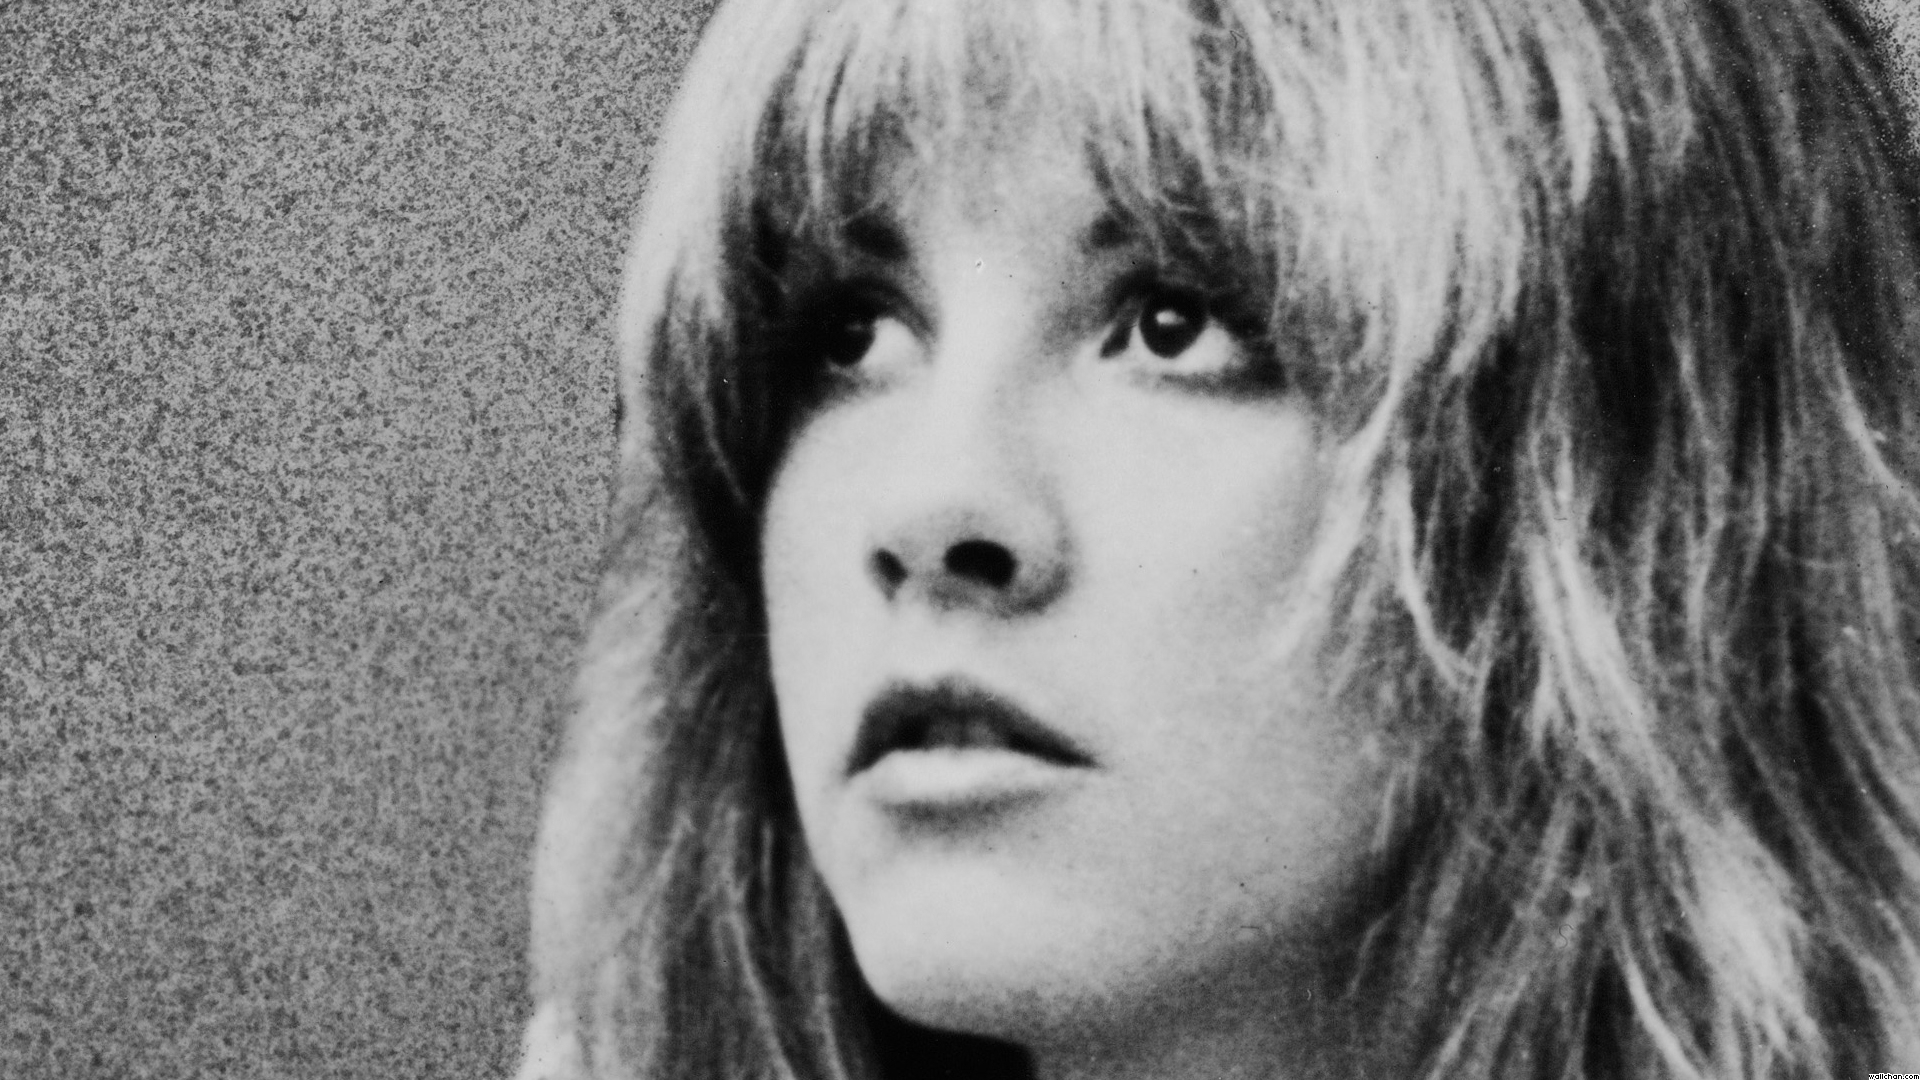 Download Stevie Nicks Wallpaper Gallery